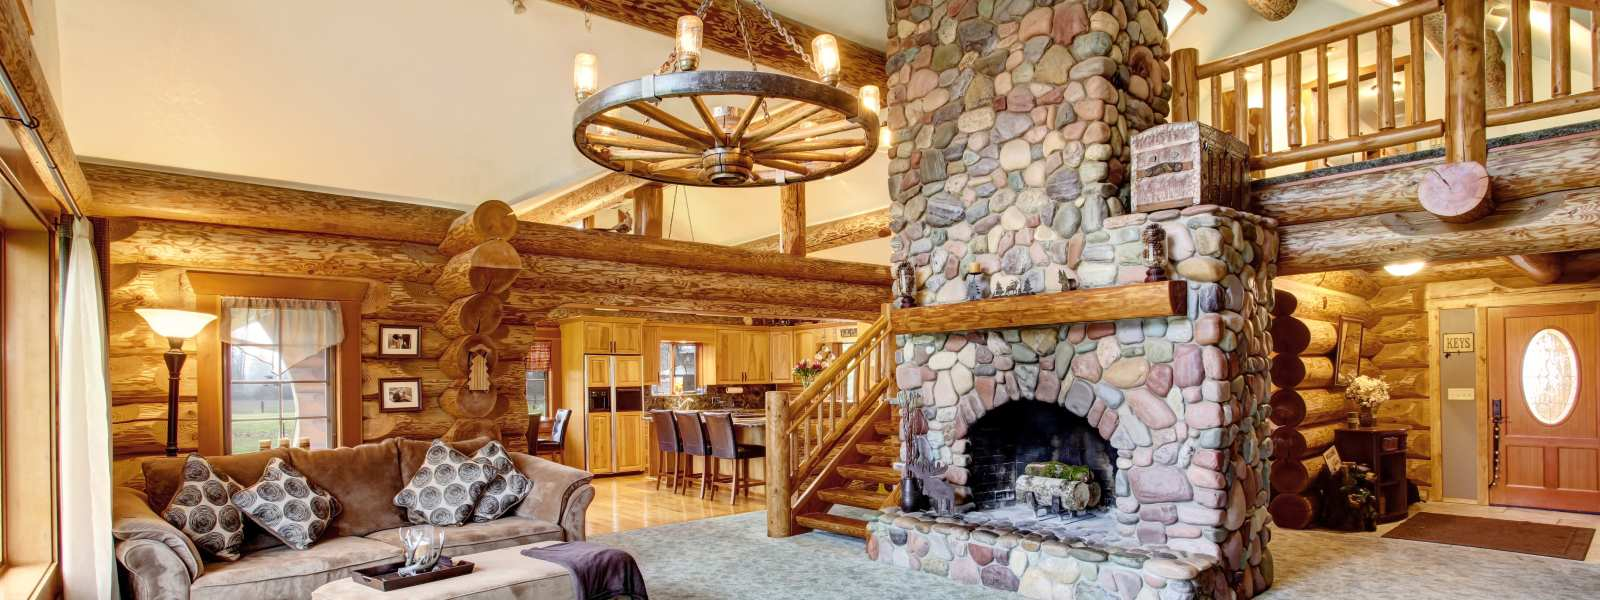 Beautifully decorated log home